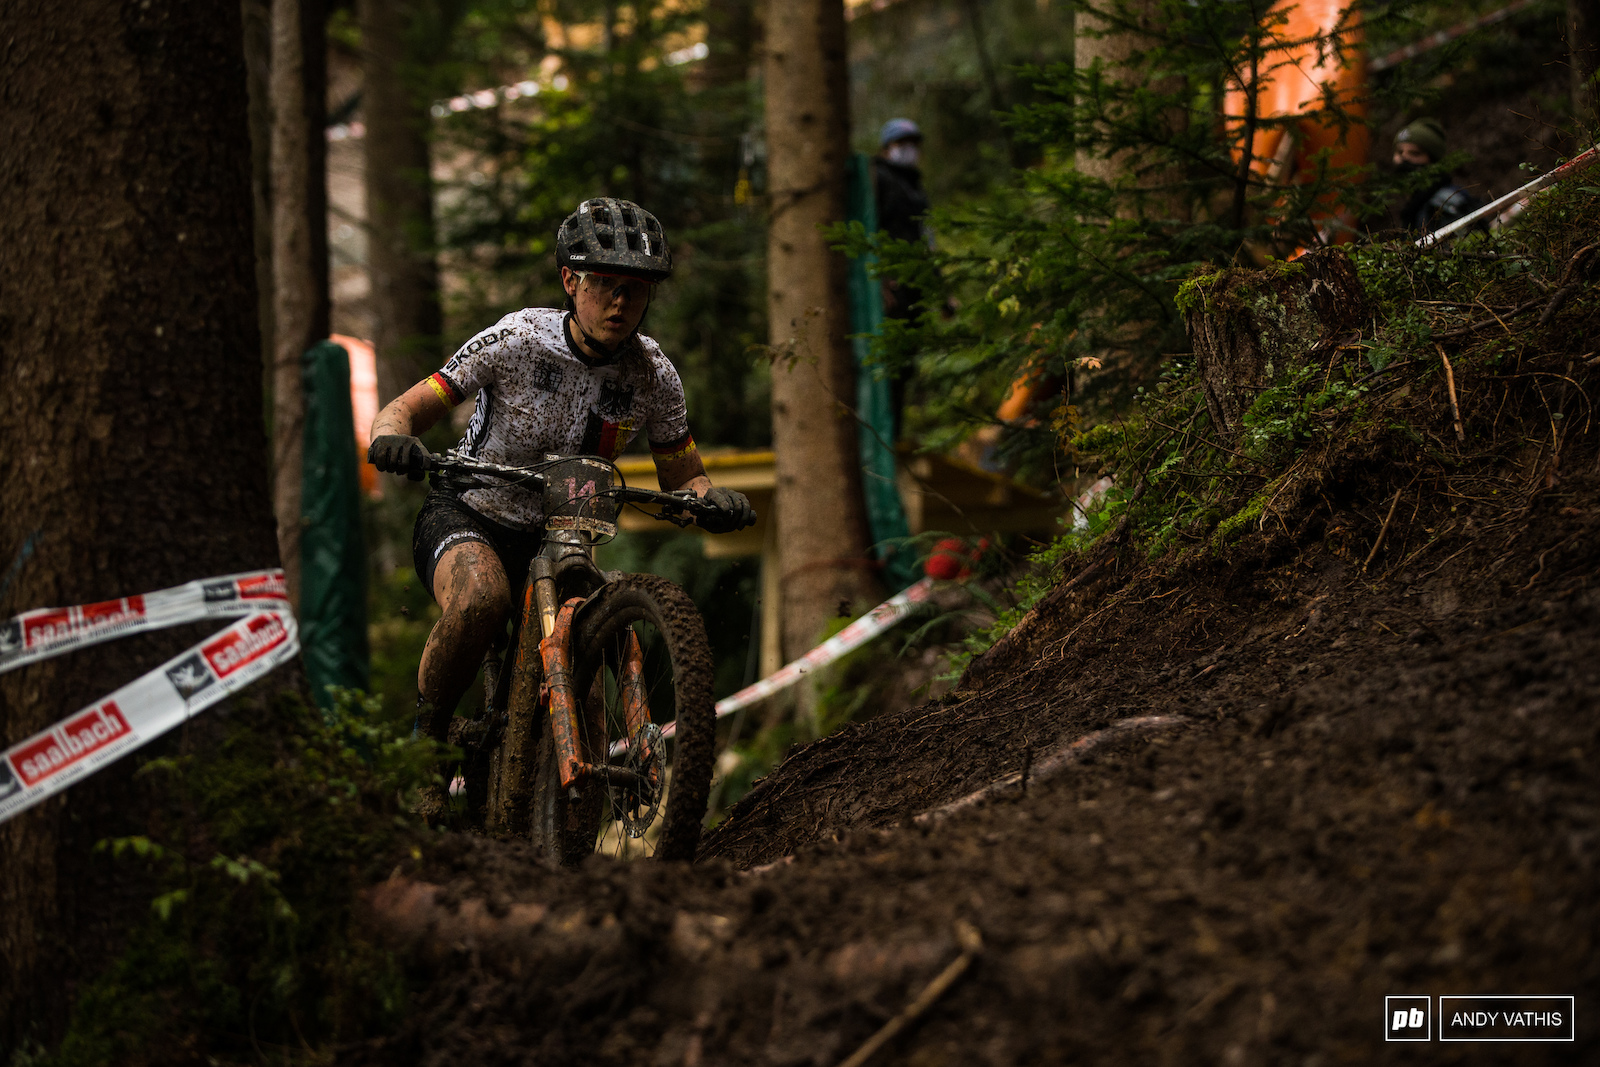 Sofia Wiedenroth surviving the deep ruts into fourth.